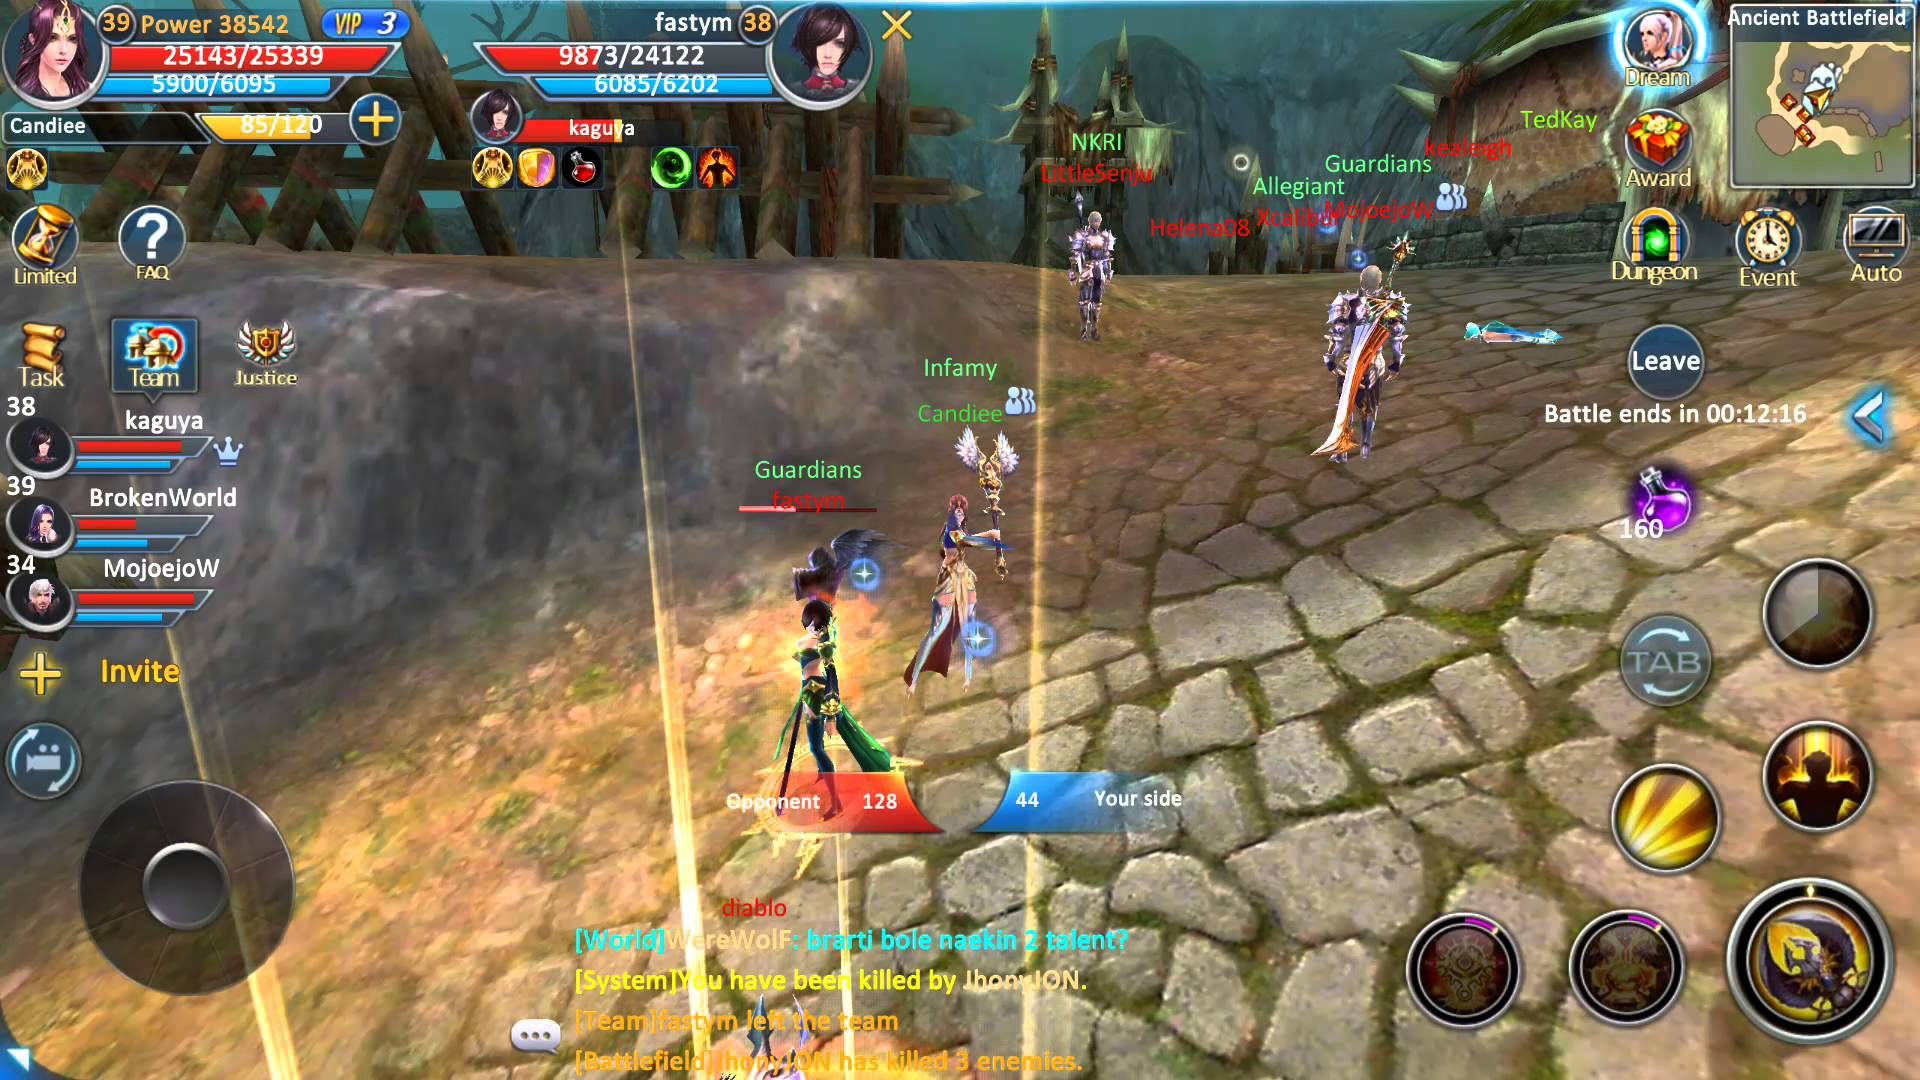 Best MMO Android Games You Can Play For Free | Games